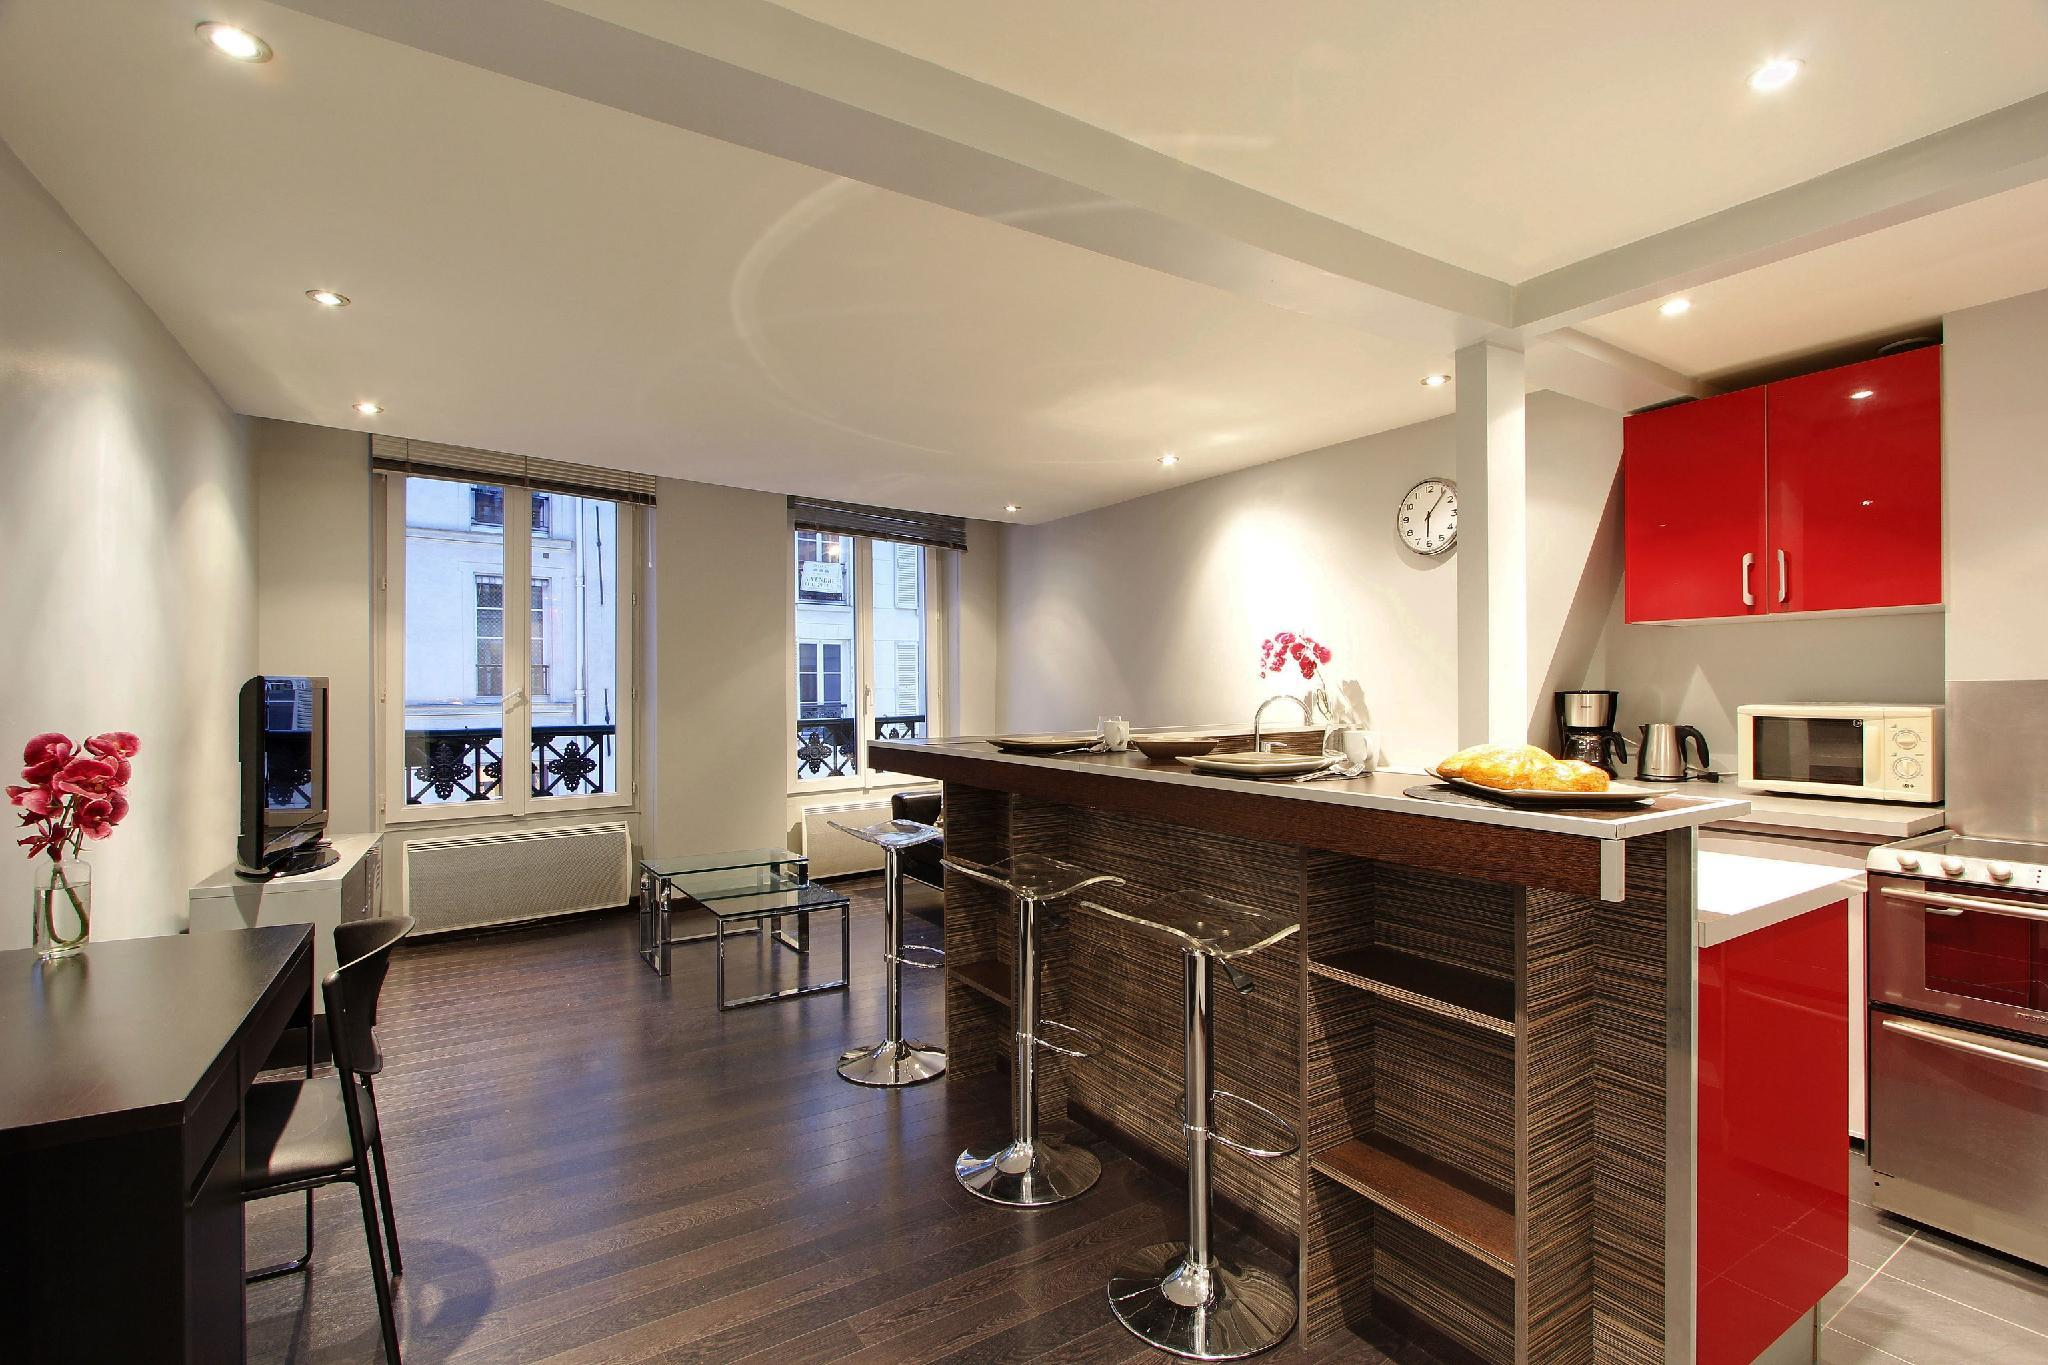 102002 - Contemporary flat for 2 people, Montorgueuil, metro Sentier